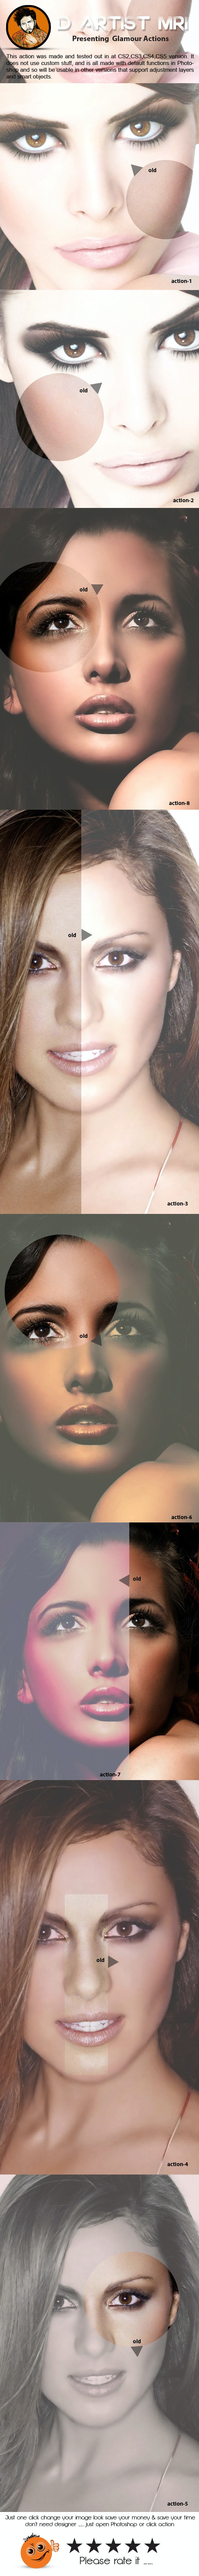 Glamour Actions - Actions Photoshop